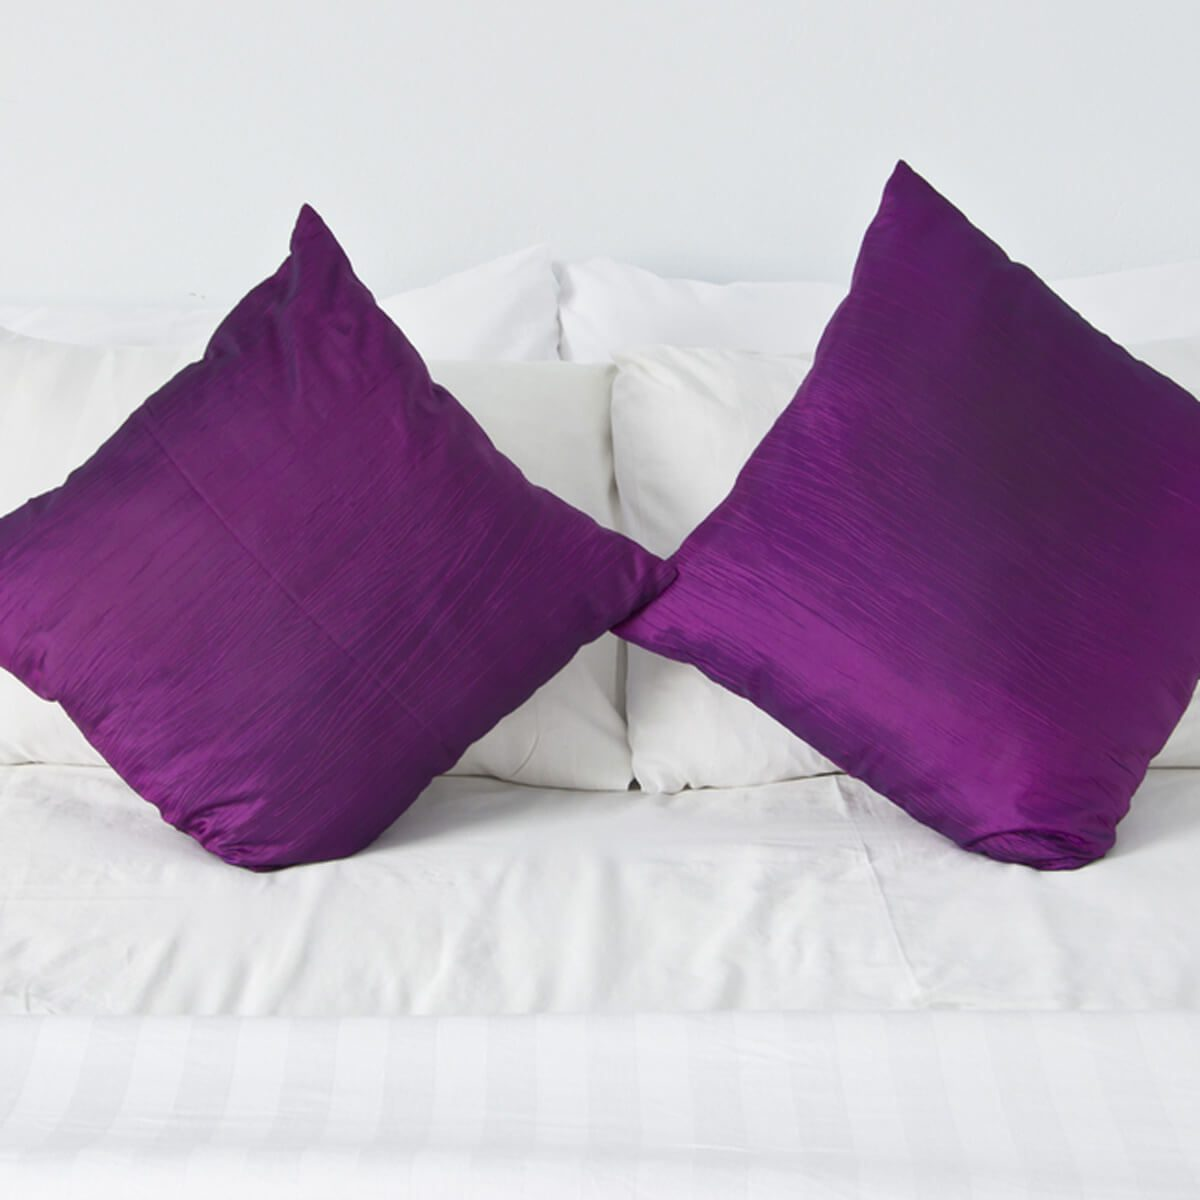 shutterstock_83025514 purple bed pillows